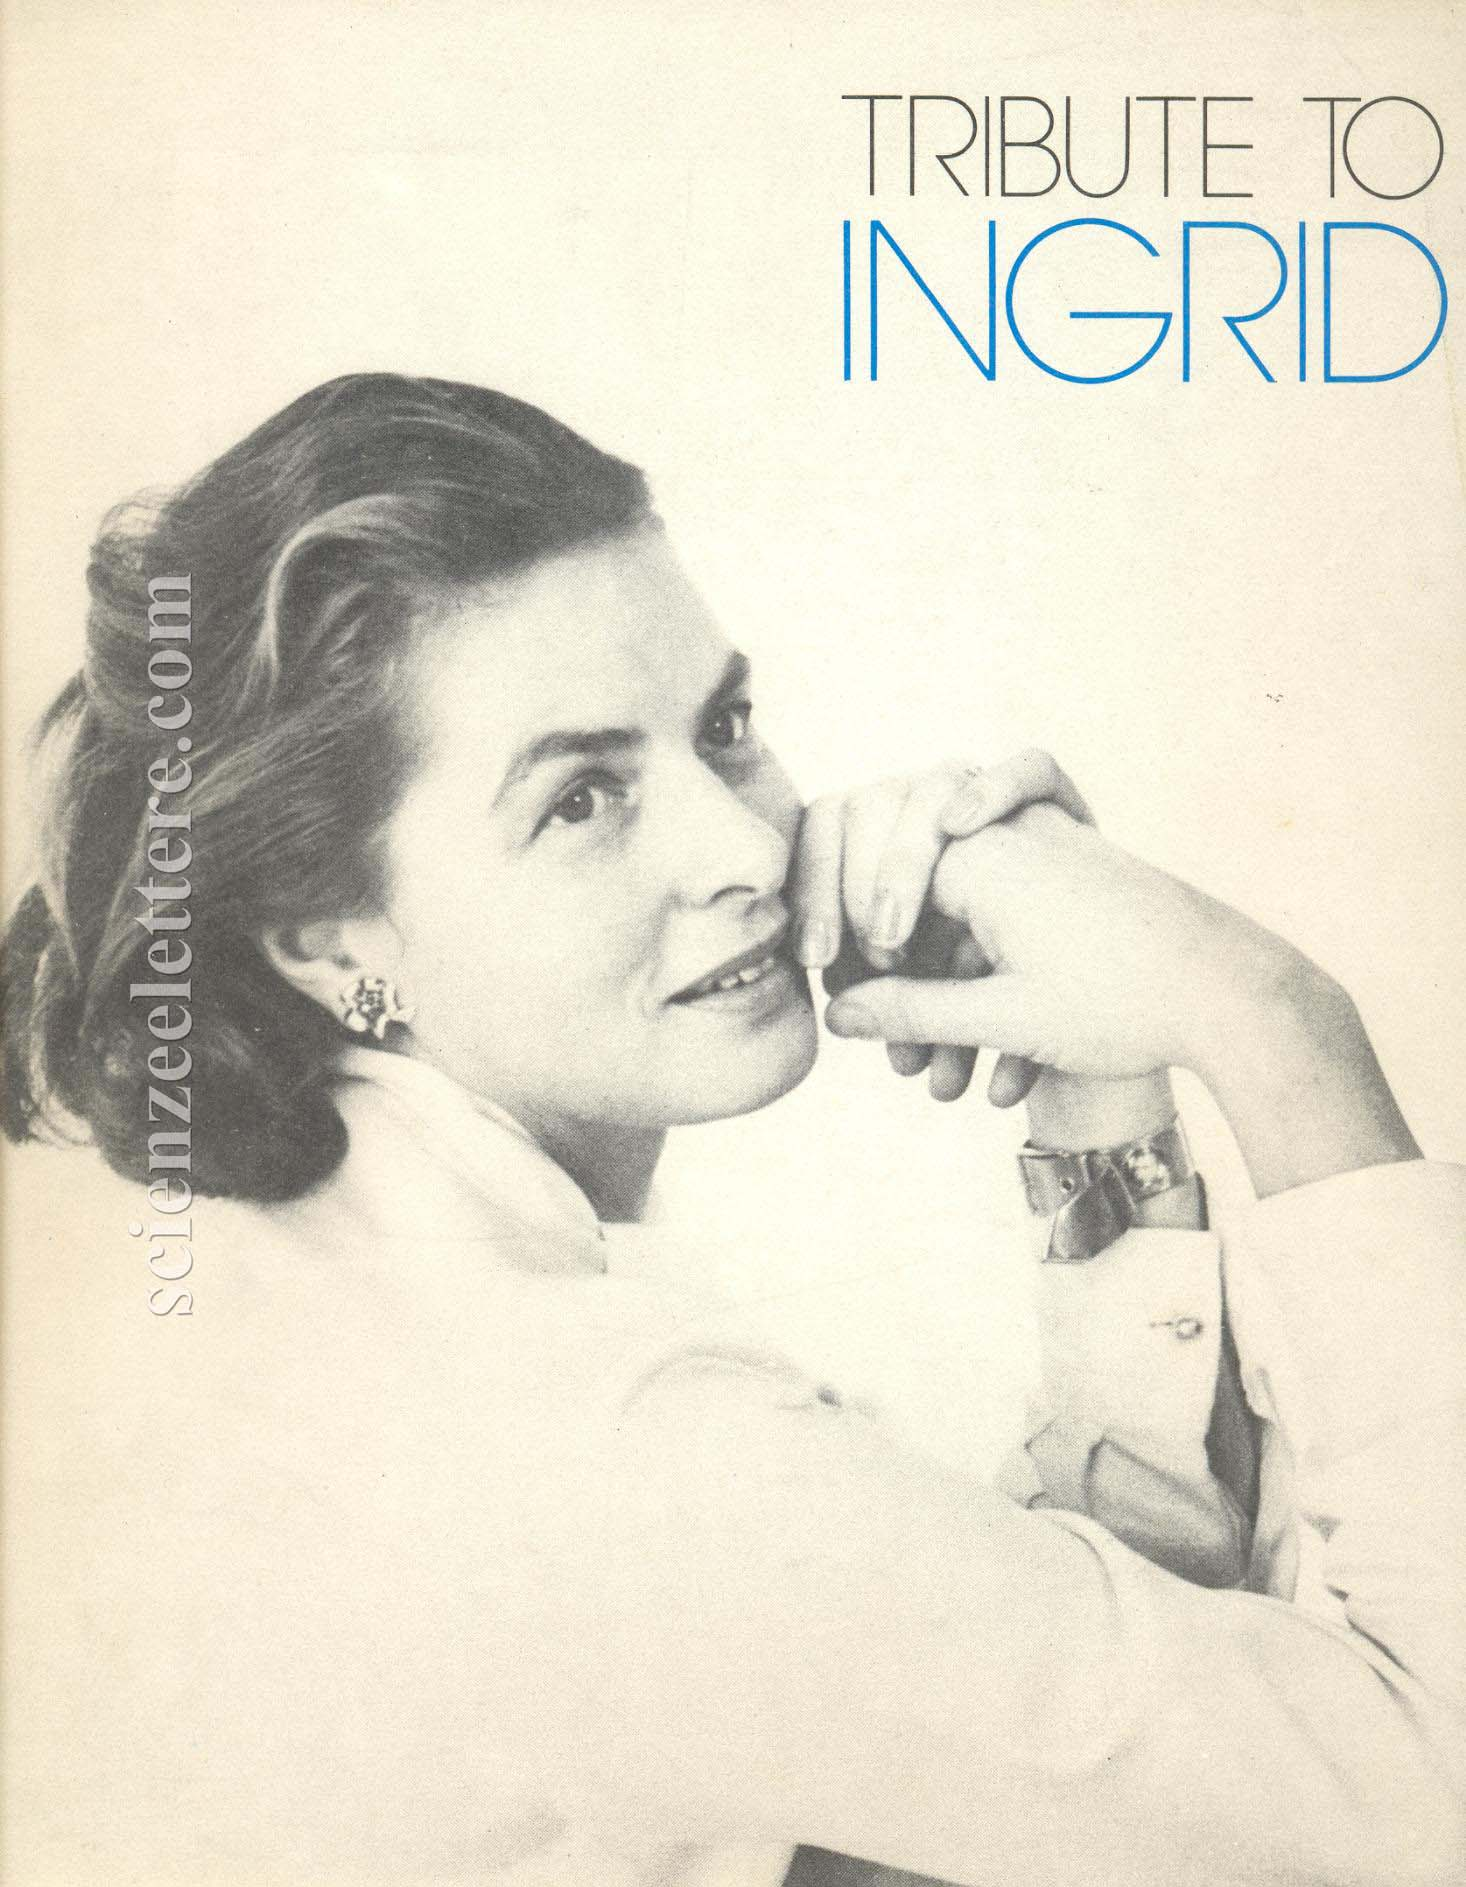 ... use the form below to delete this tribute to ingrid bergman image from